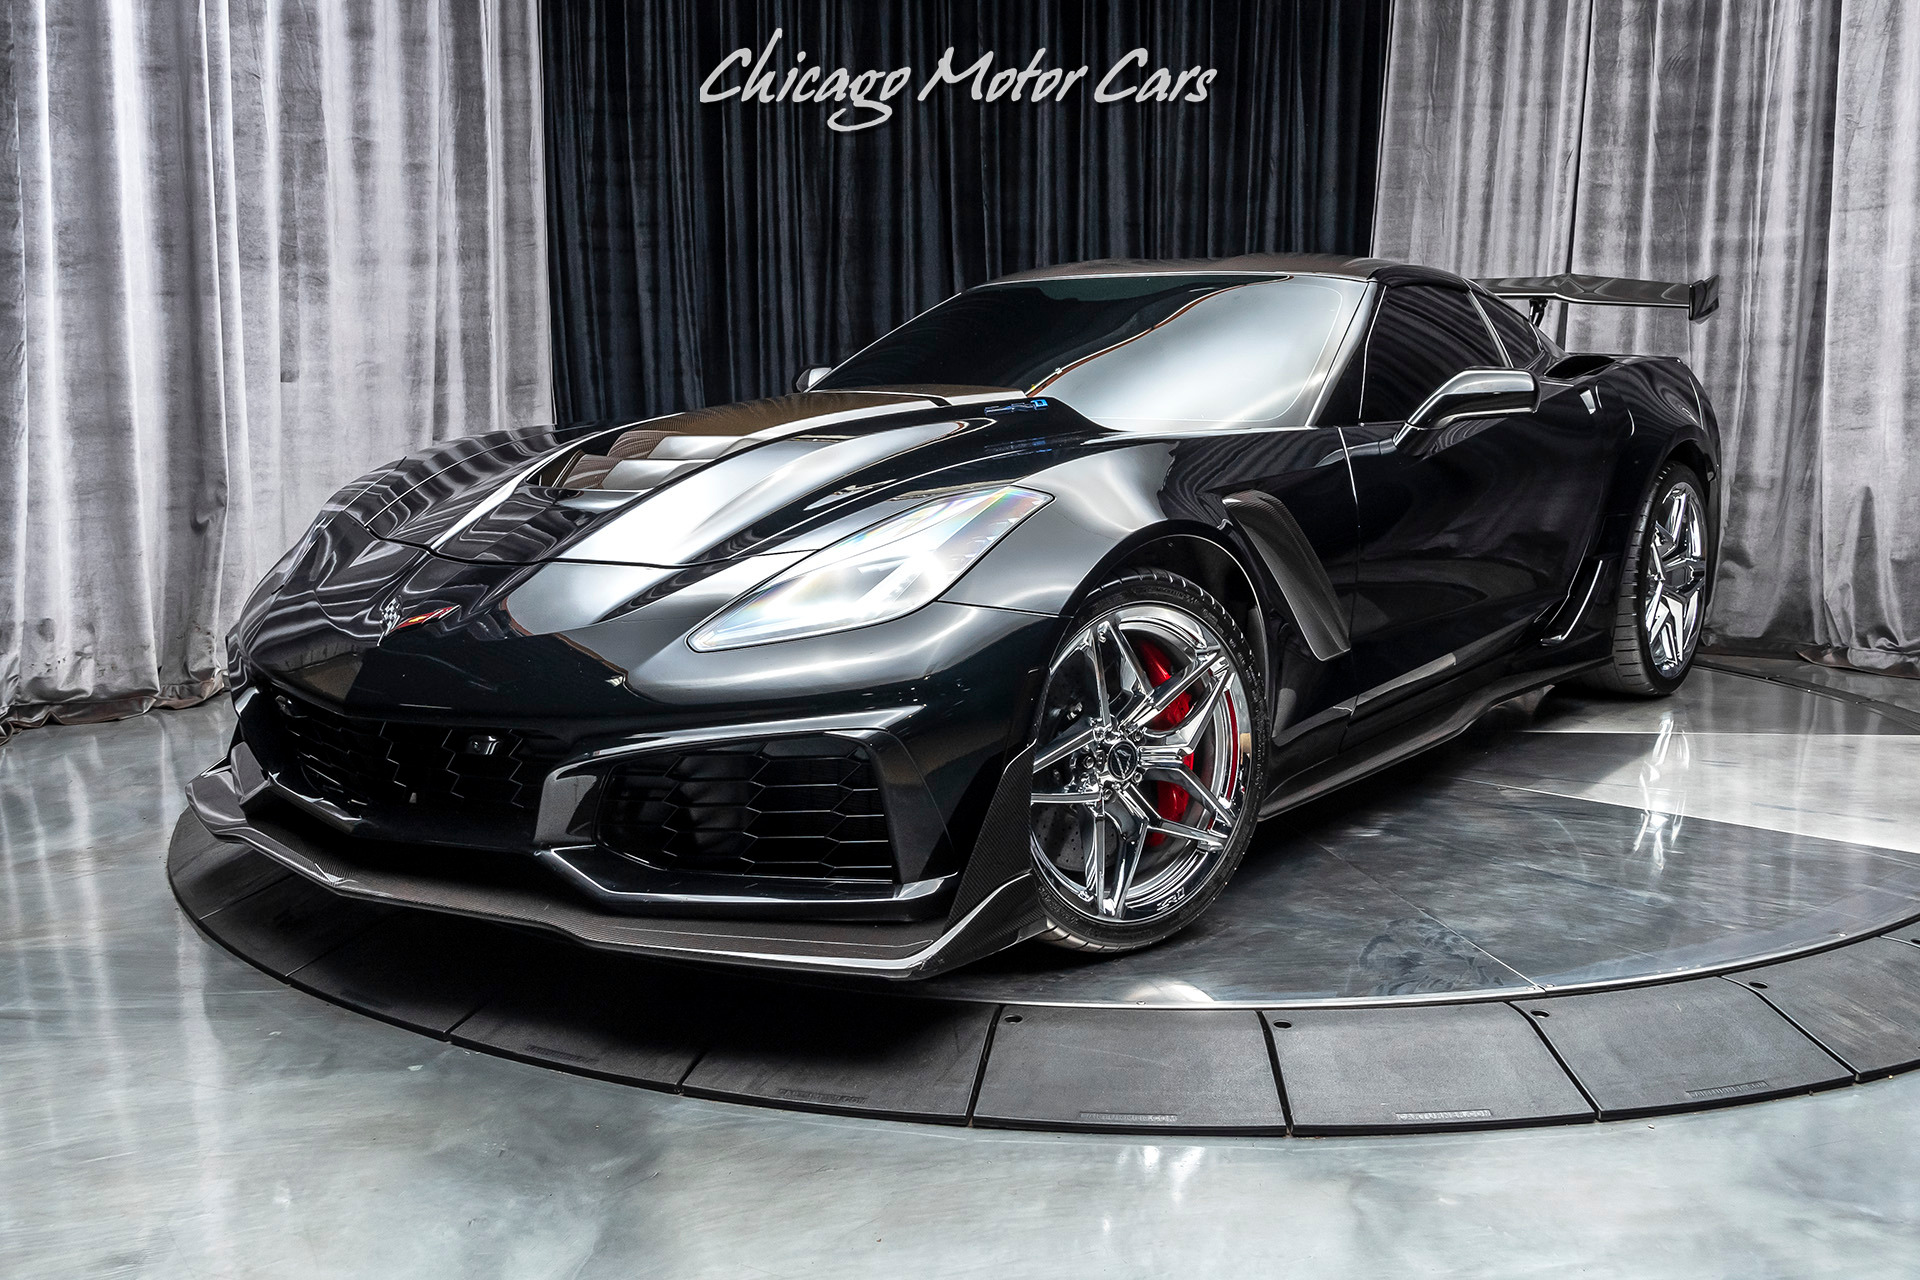 Used-2019-Chevrolet-Corvette-ZR1-3ZR-Coupe---ZR1-Track-Performance-Pkg-Competition-Sport-Bucket-Seats